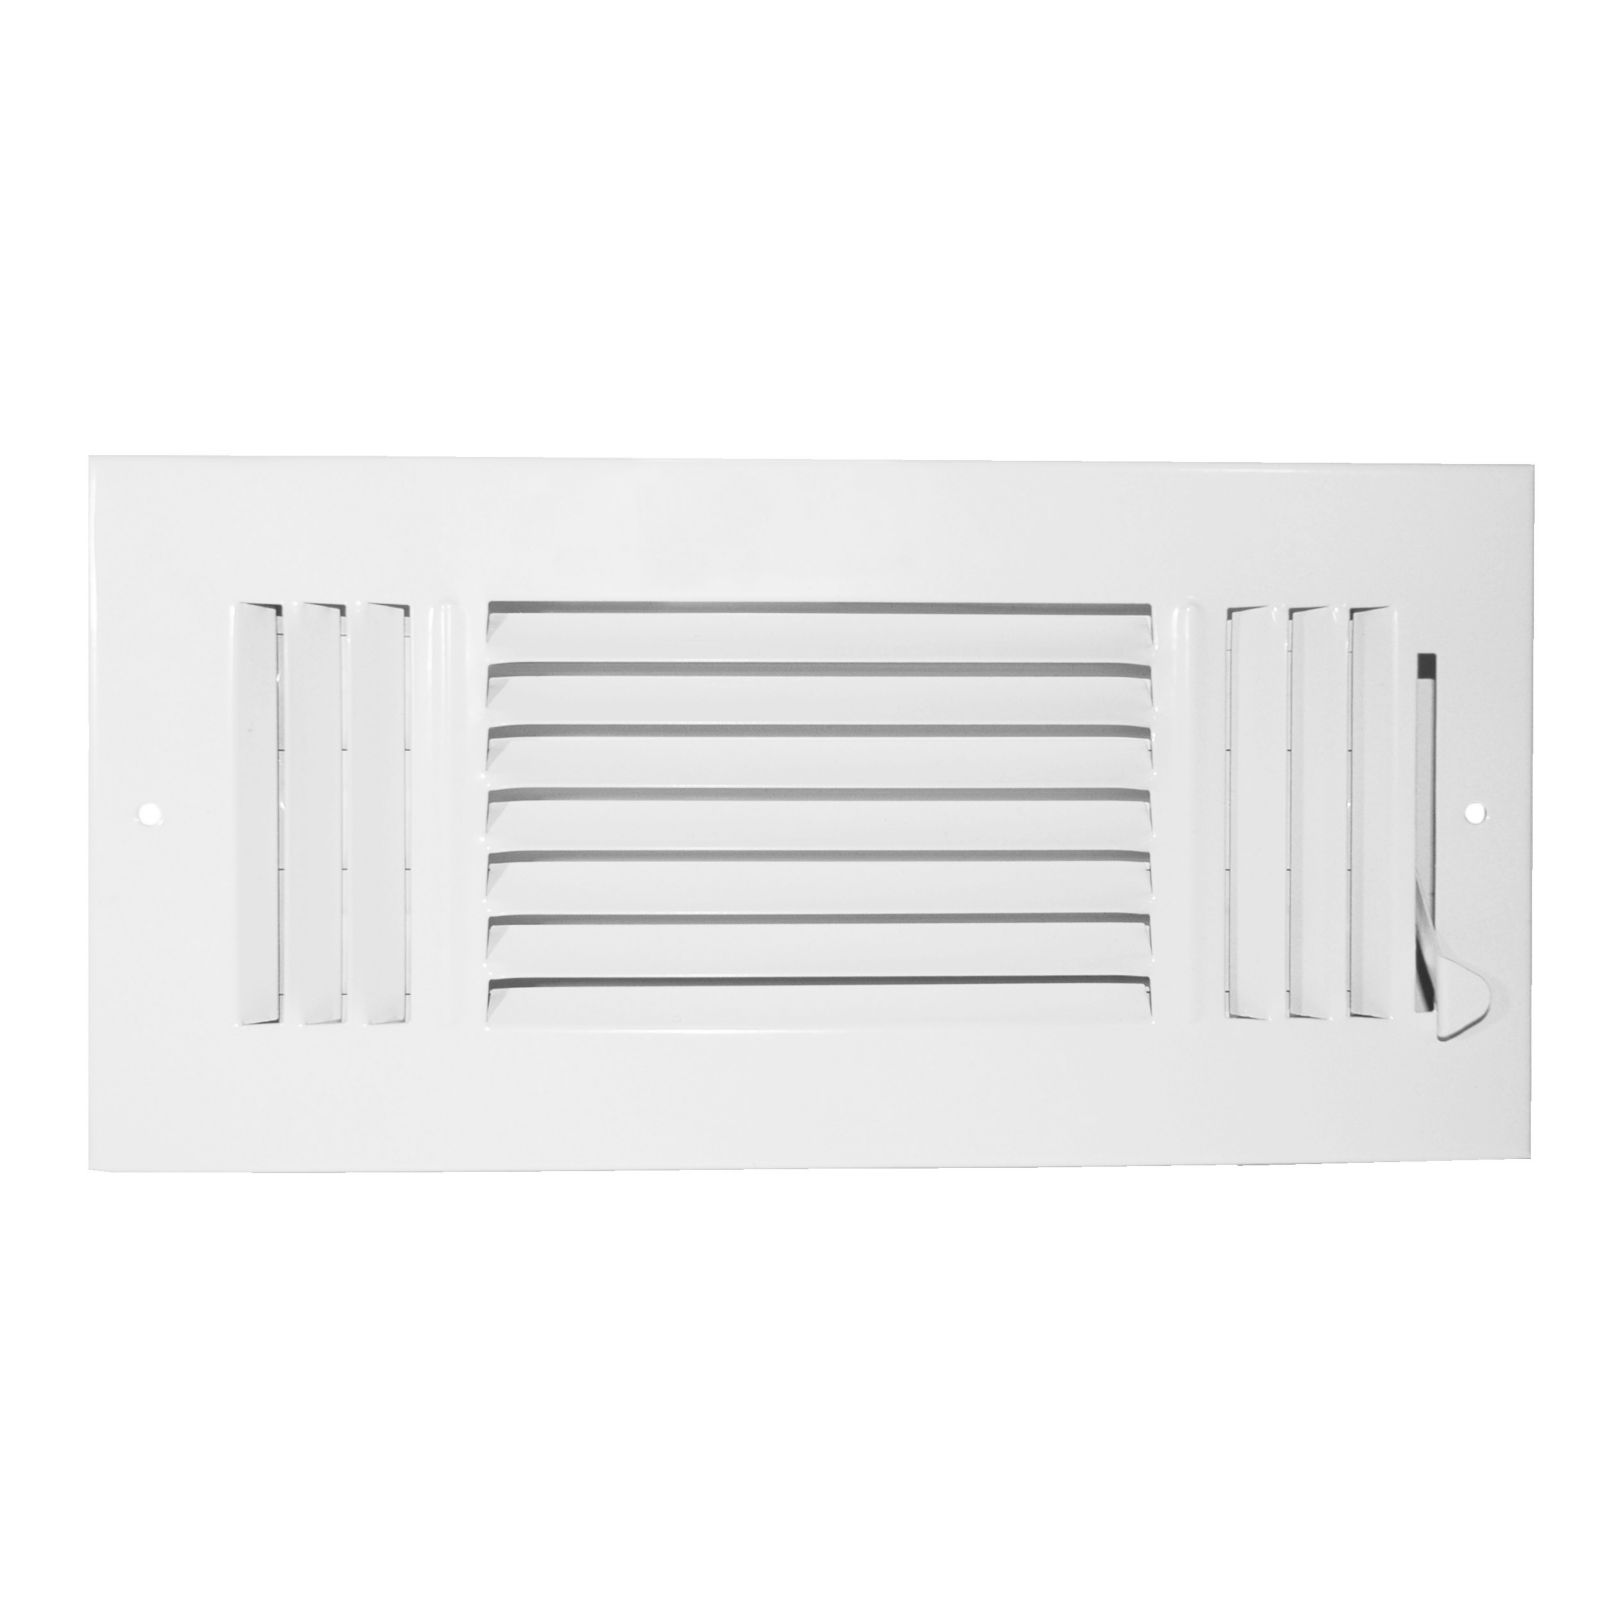 "Steel Sidewall Air Register 3-Way, 16"" X 6"" White"